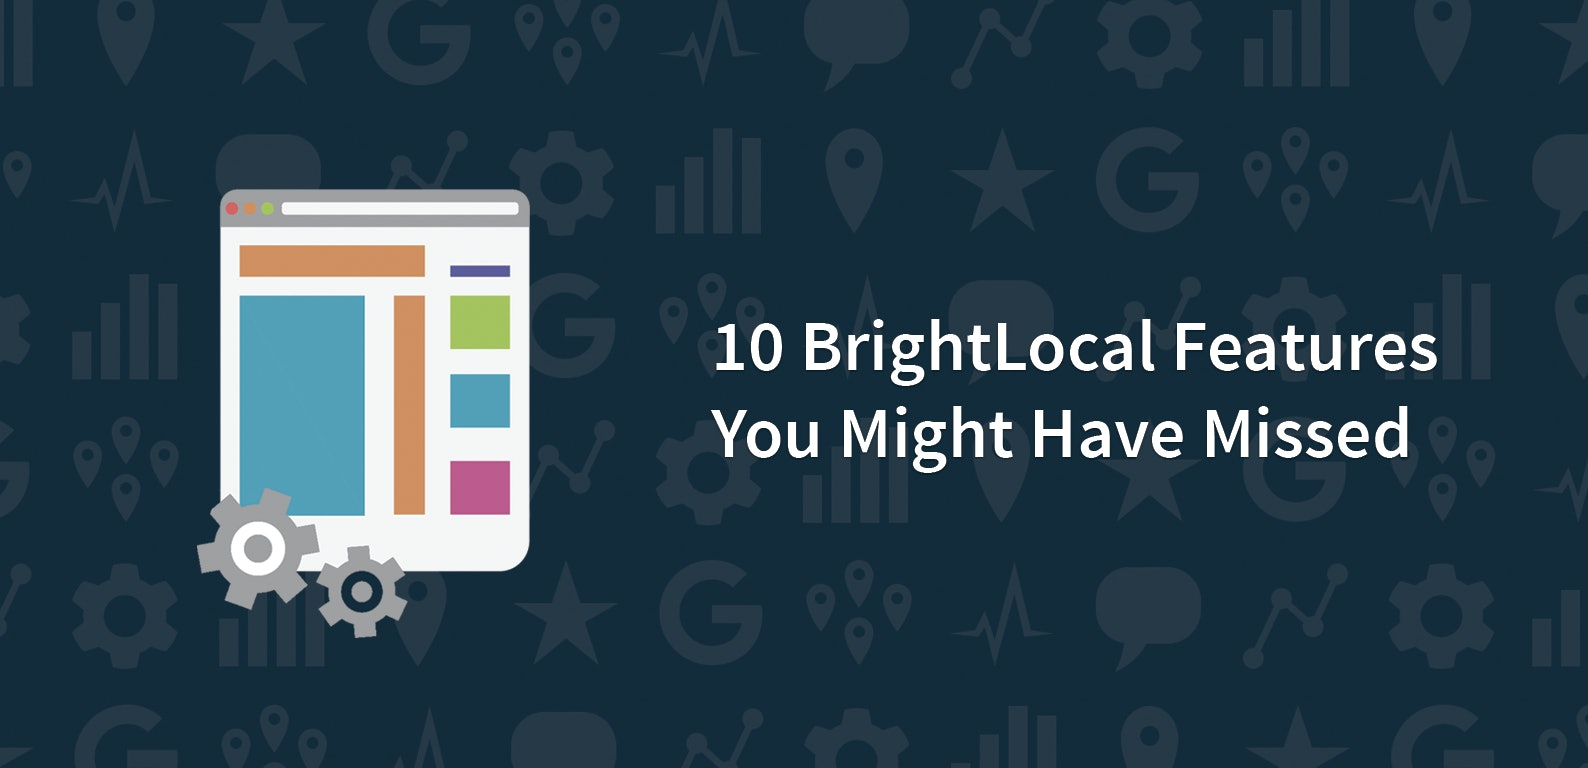 10 BrightLocal Features You Might Have Missed